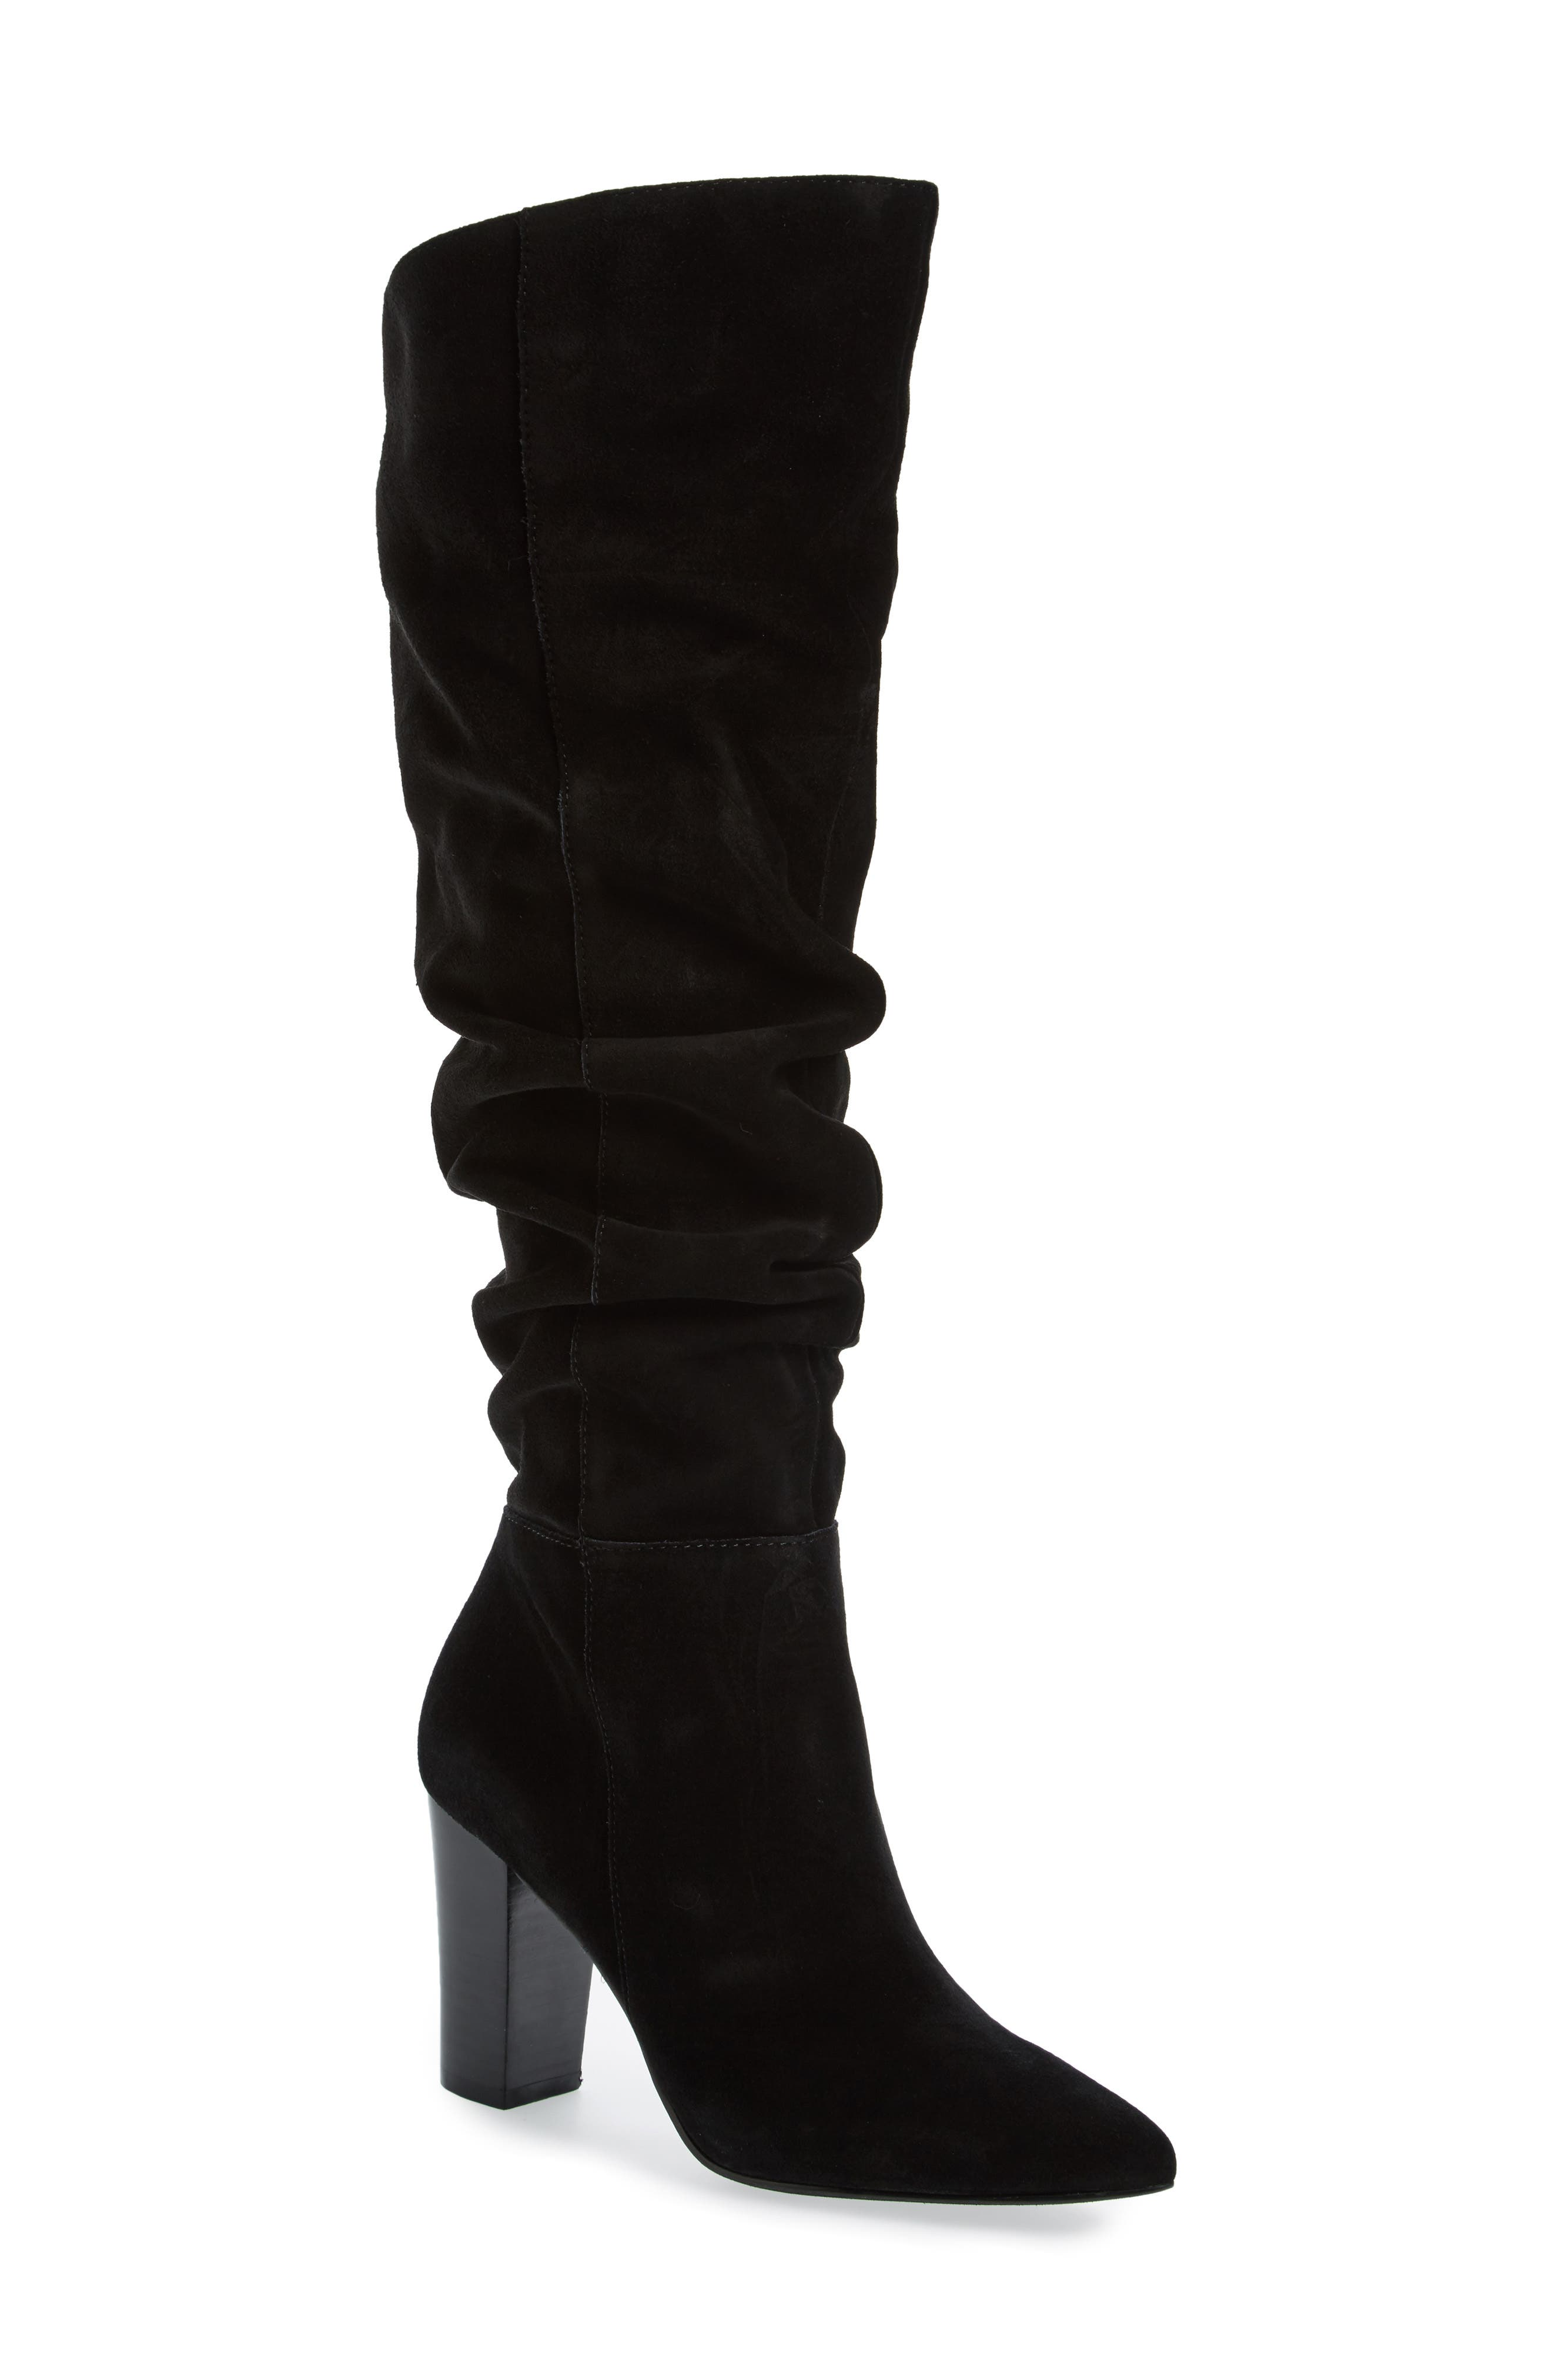 x Something Navy Aiden Knee High Boot,                             Main thumbnail 1, color,                             001